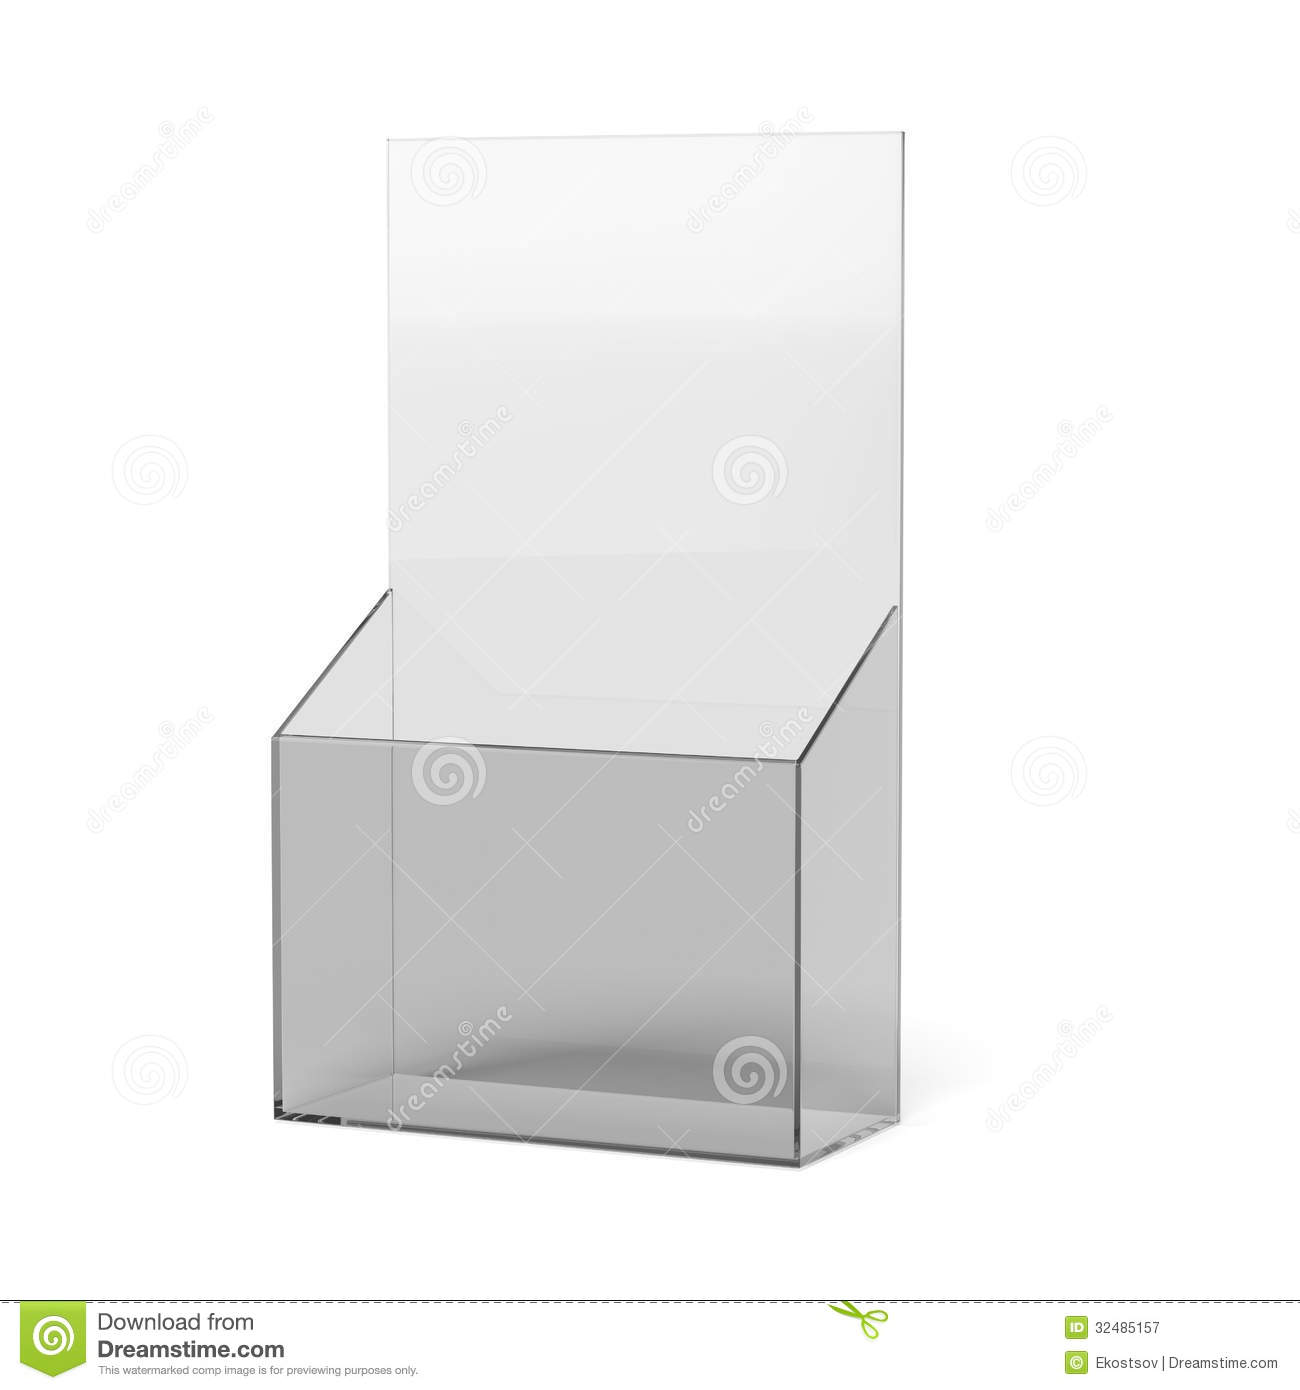 paper brochure holder template - blank brochure holder royalty free stock photography